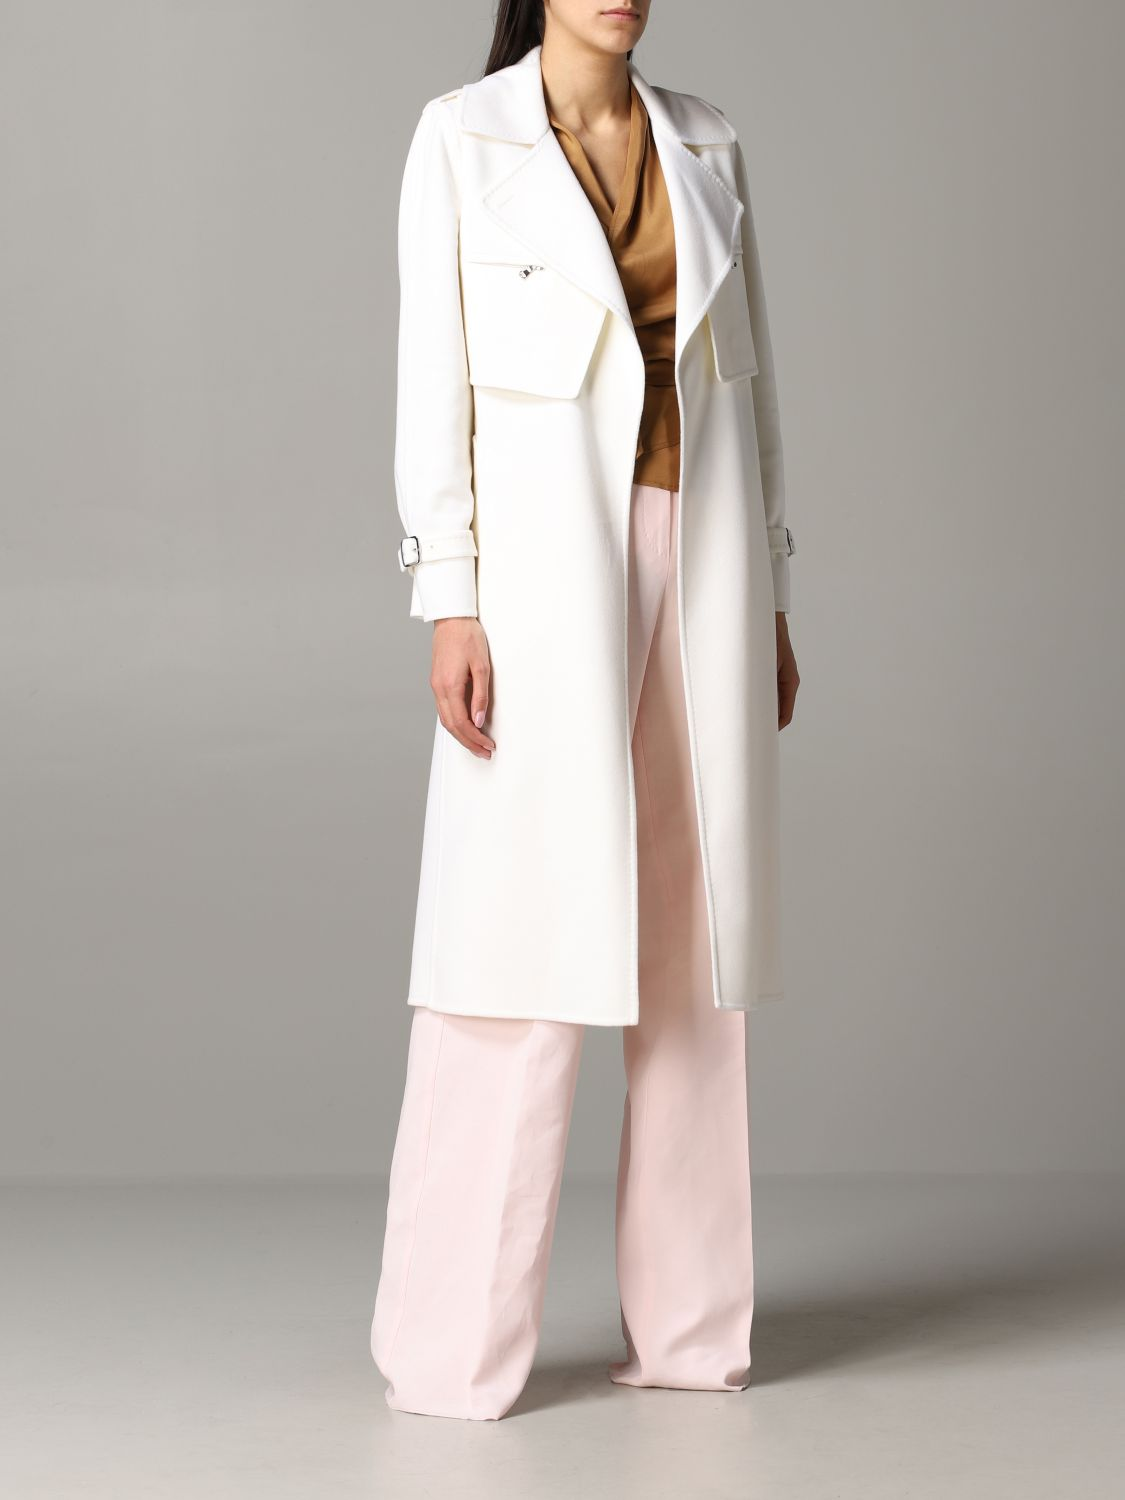 Max Mara Gianna dressing gown coat with removable vest white 2